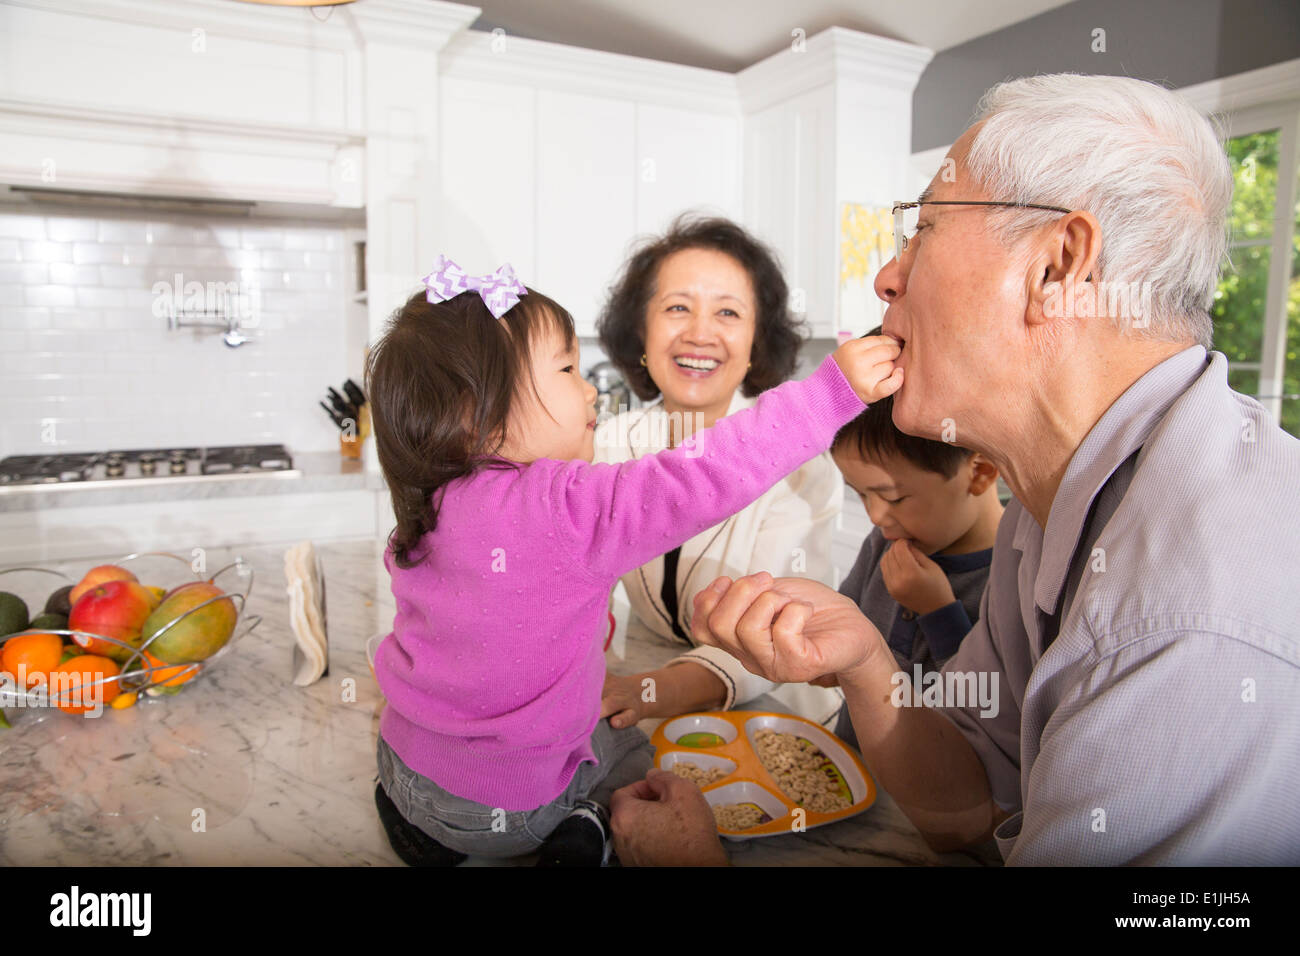 Female toddler feeding snack to grandfather in kitchen - Stock Image